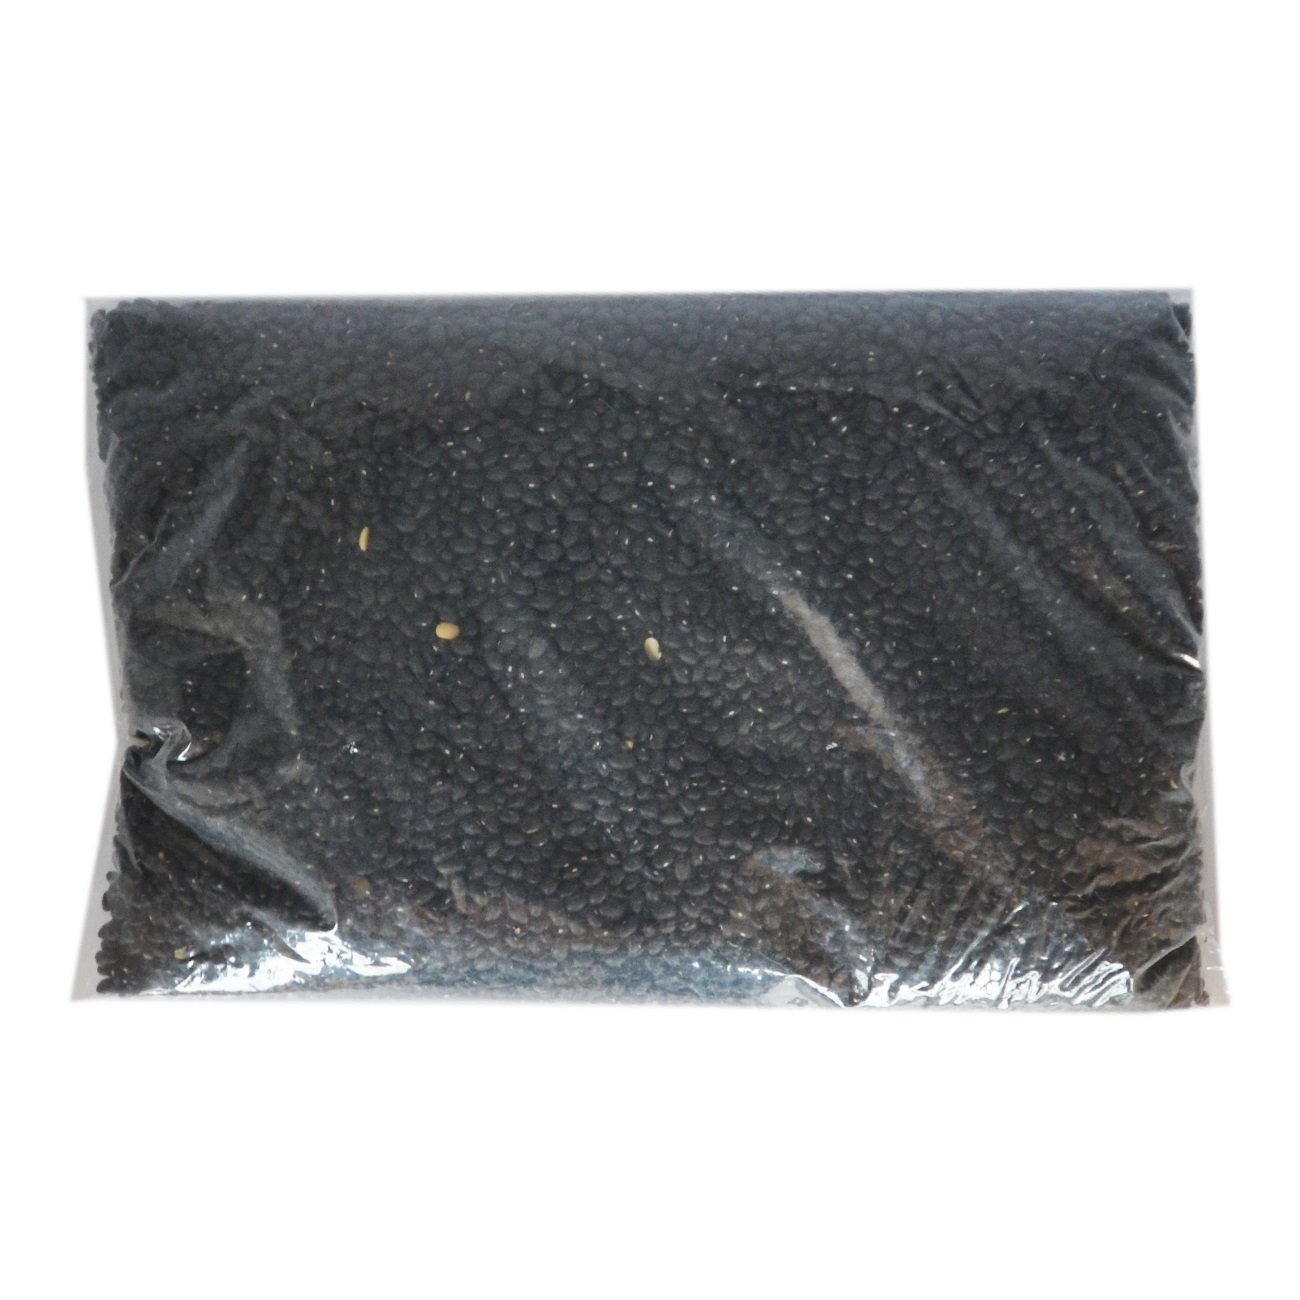 Classic Provisions Dried Black Turtle Beans, 10 Pound